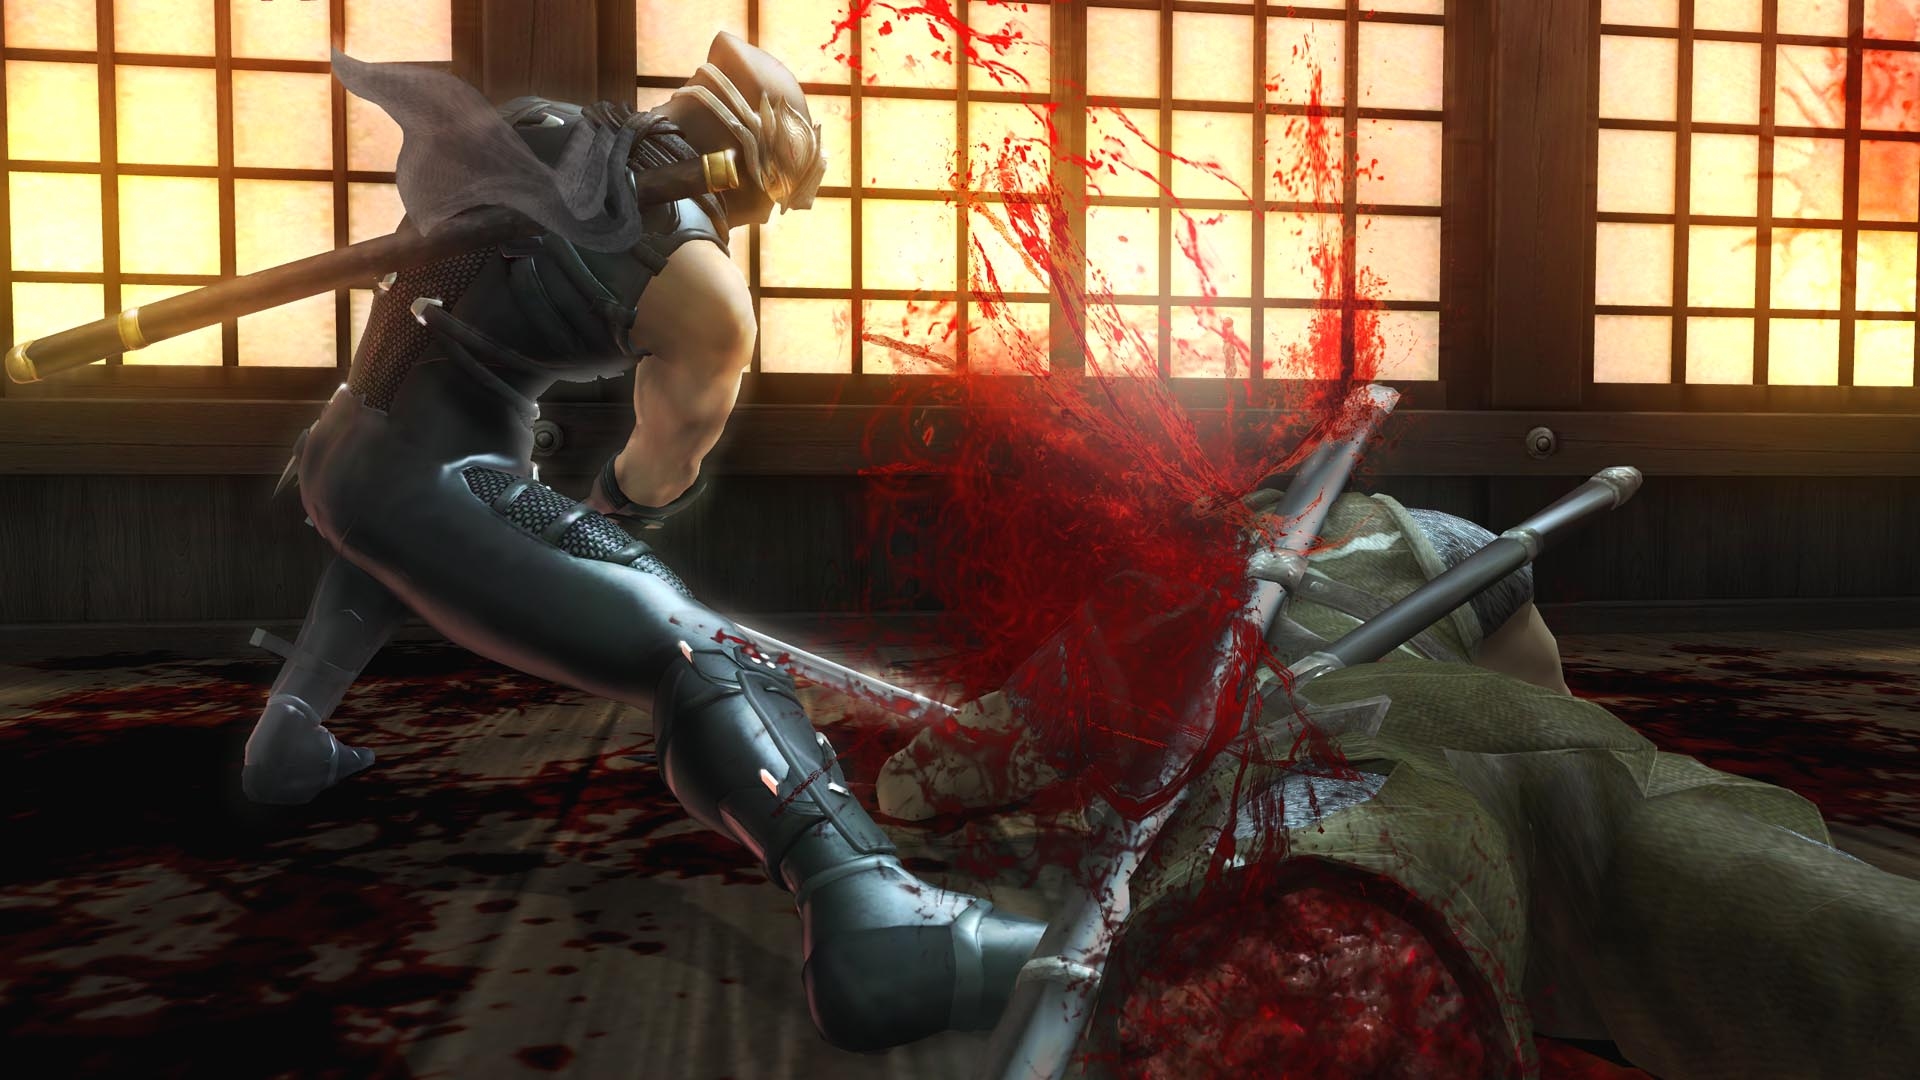 Blood Spray Anime With The Epic Blood Spray